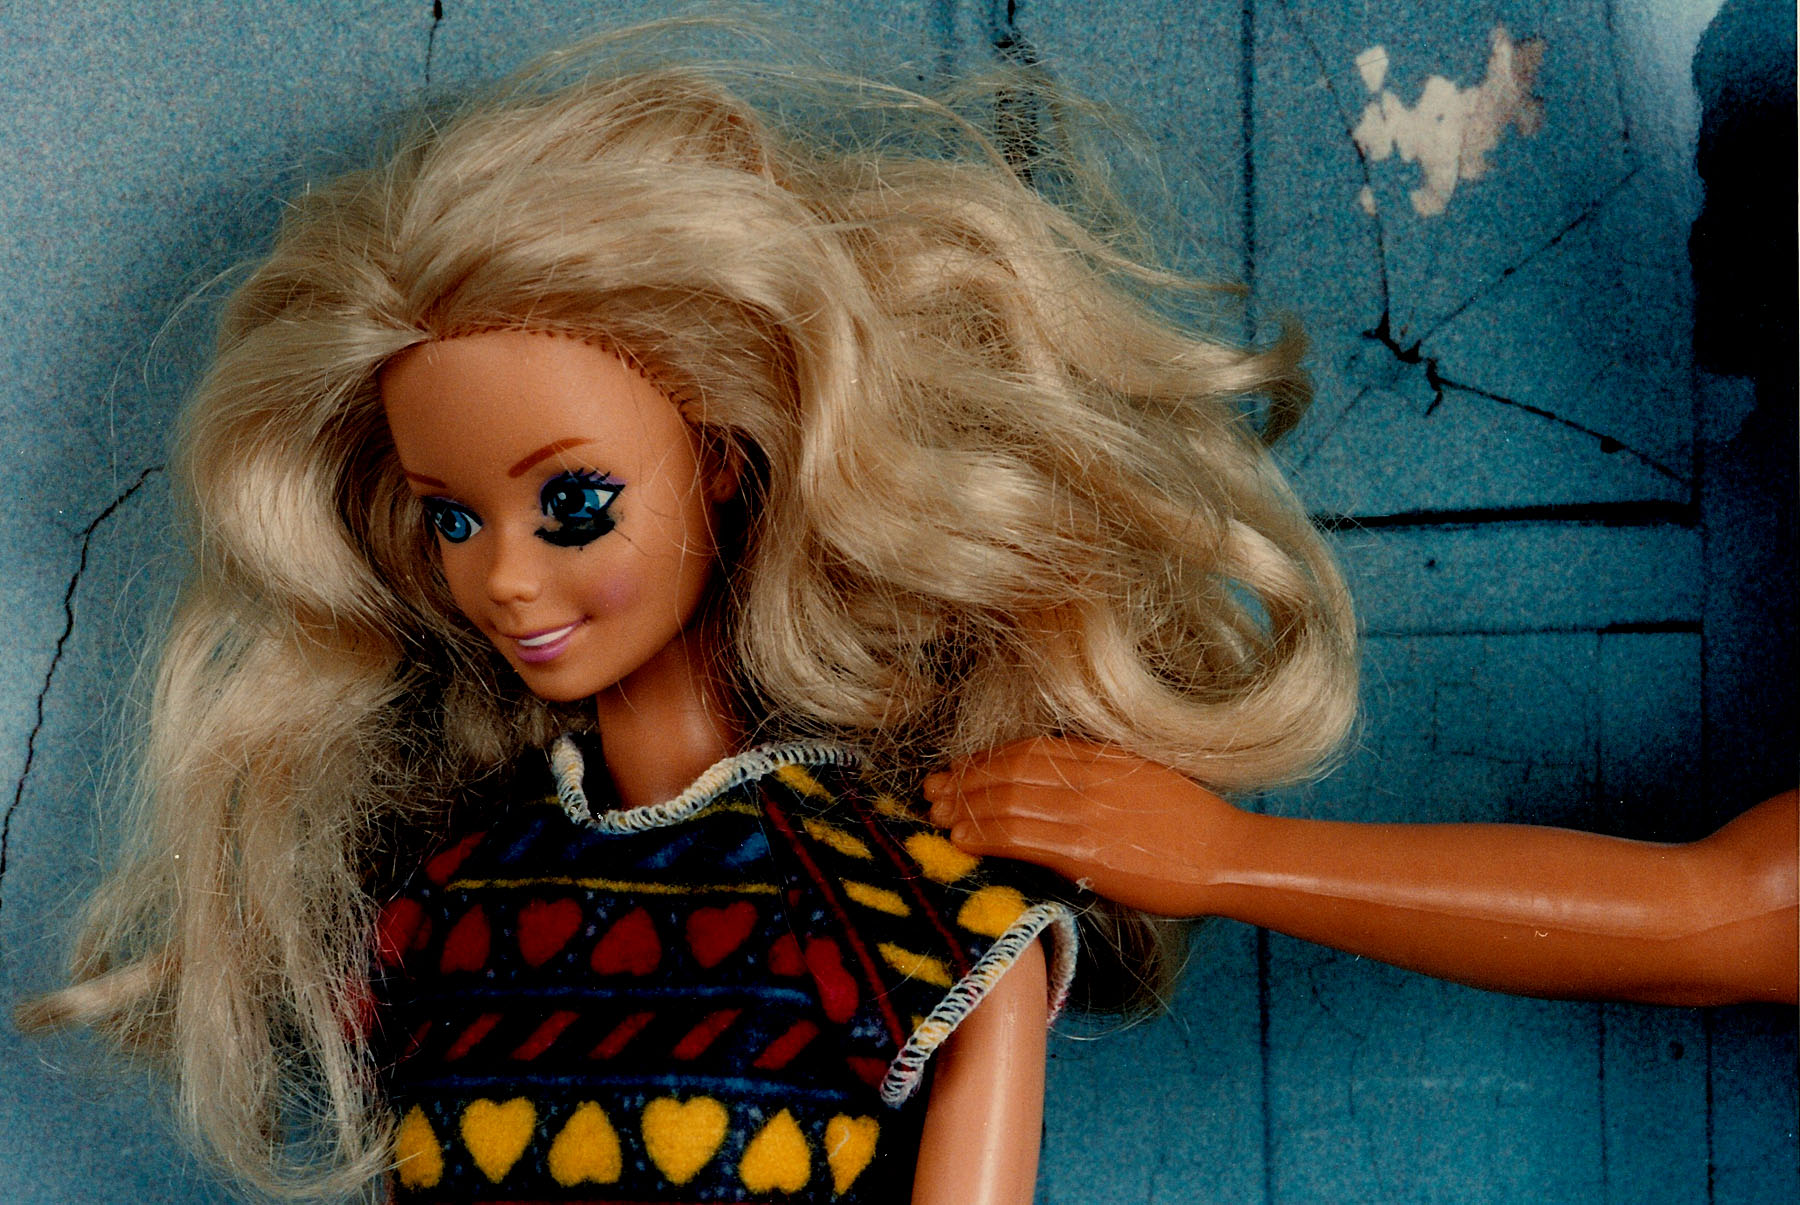 Battered Barbie